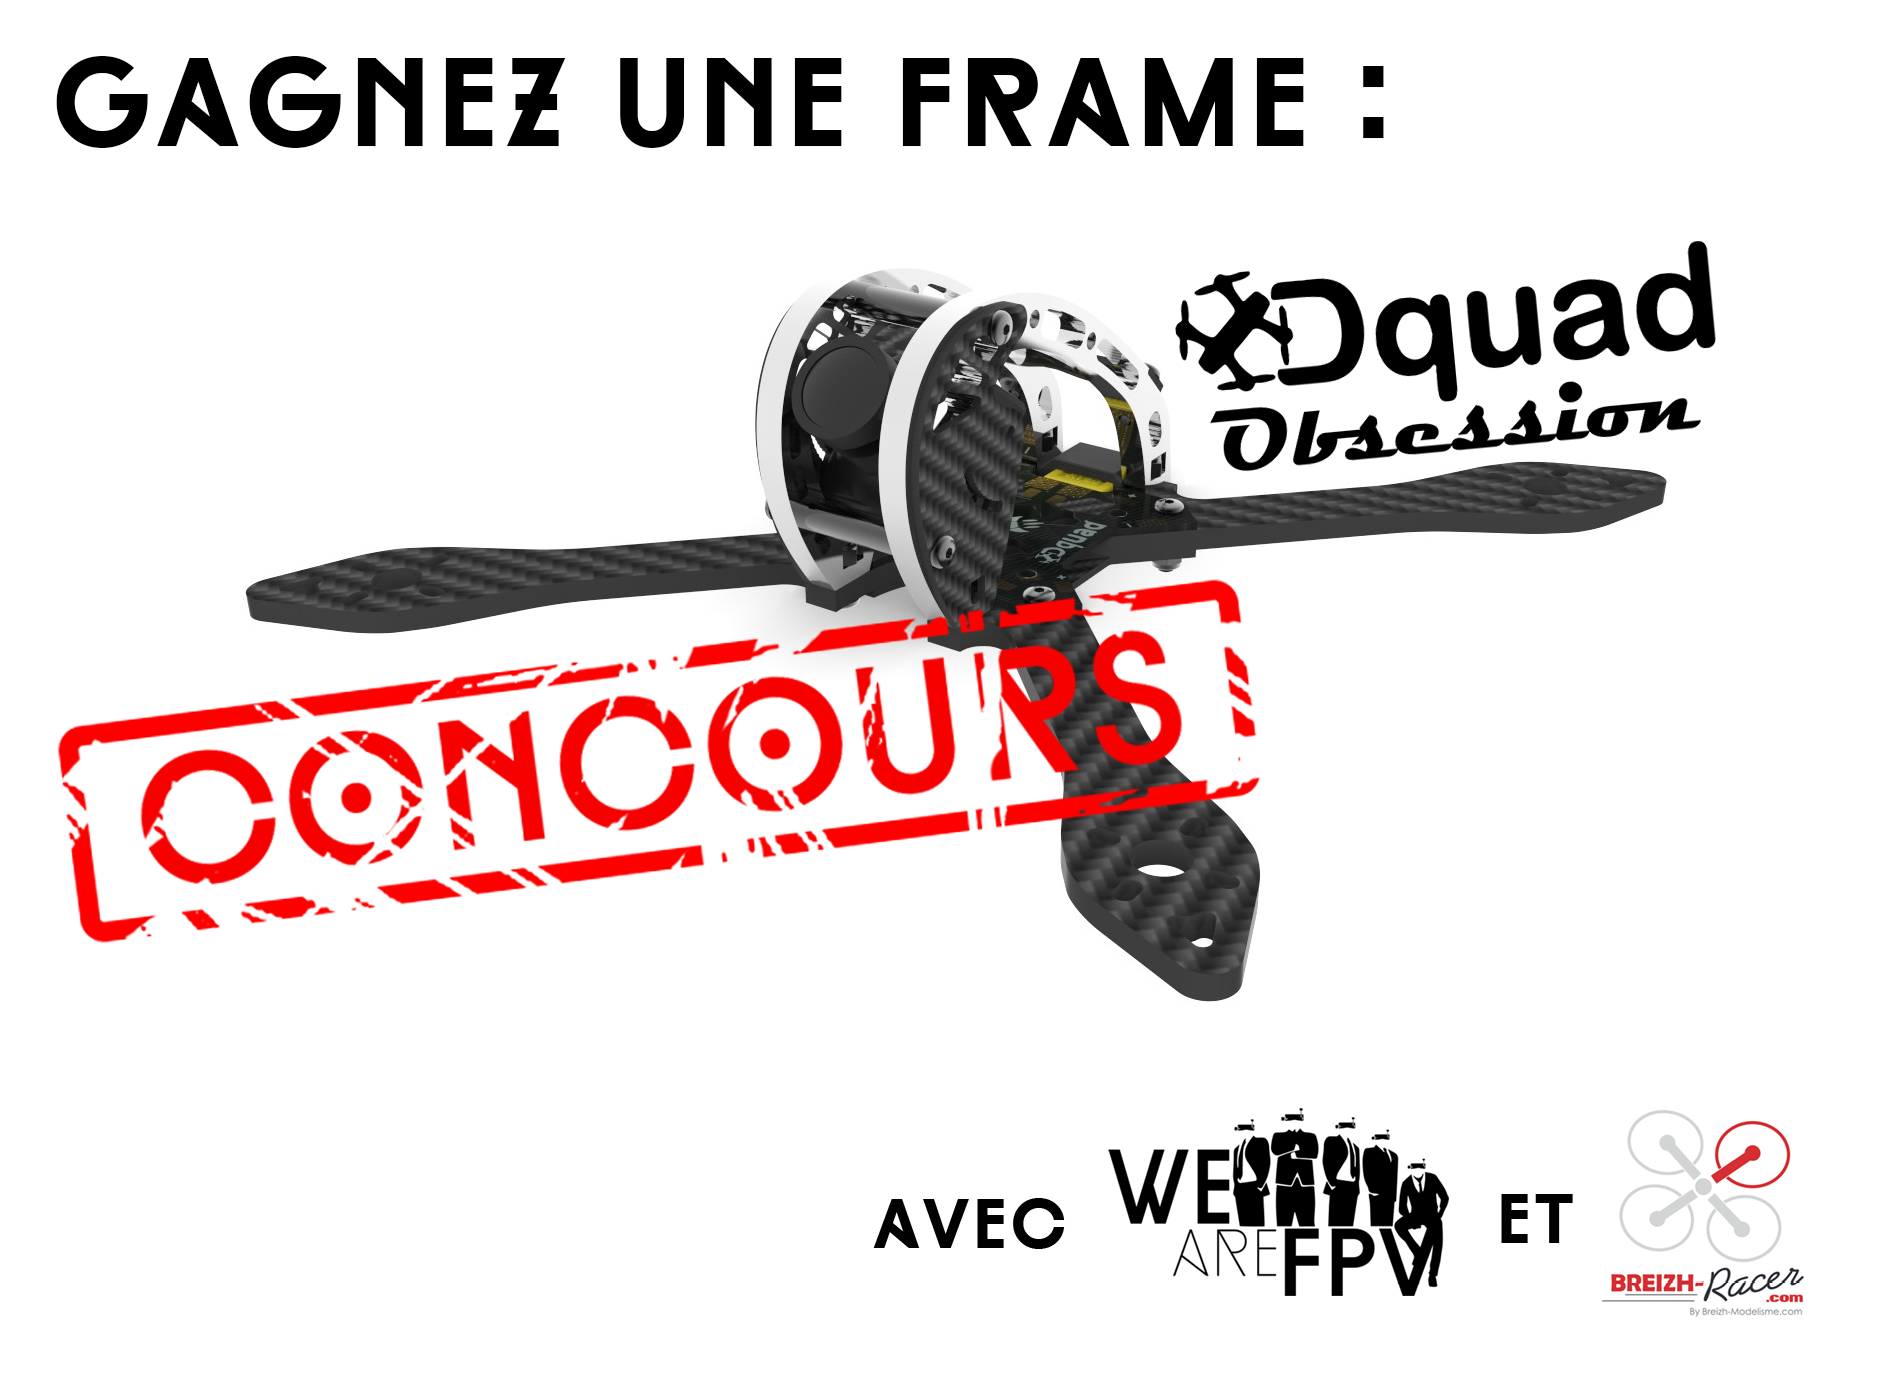 Gagnez une frame Dquad Obsession